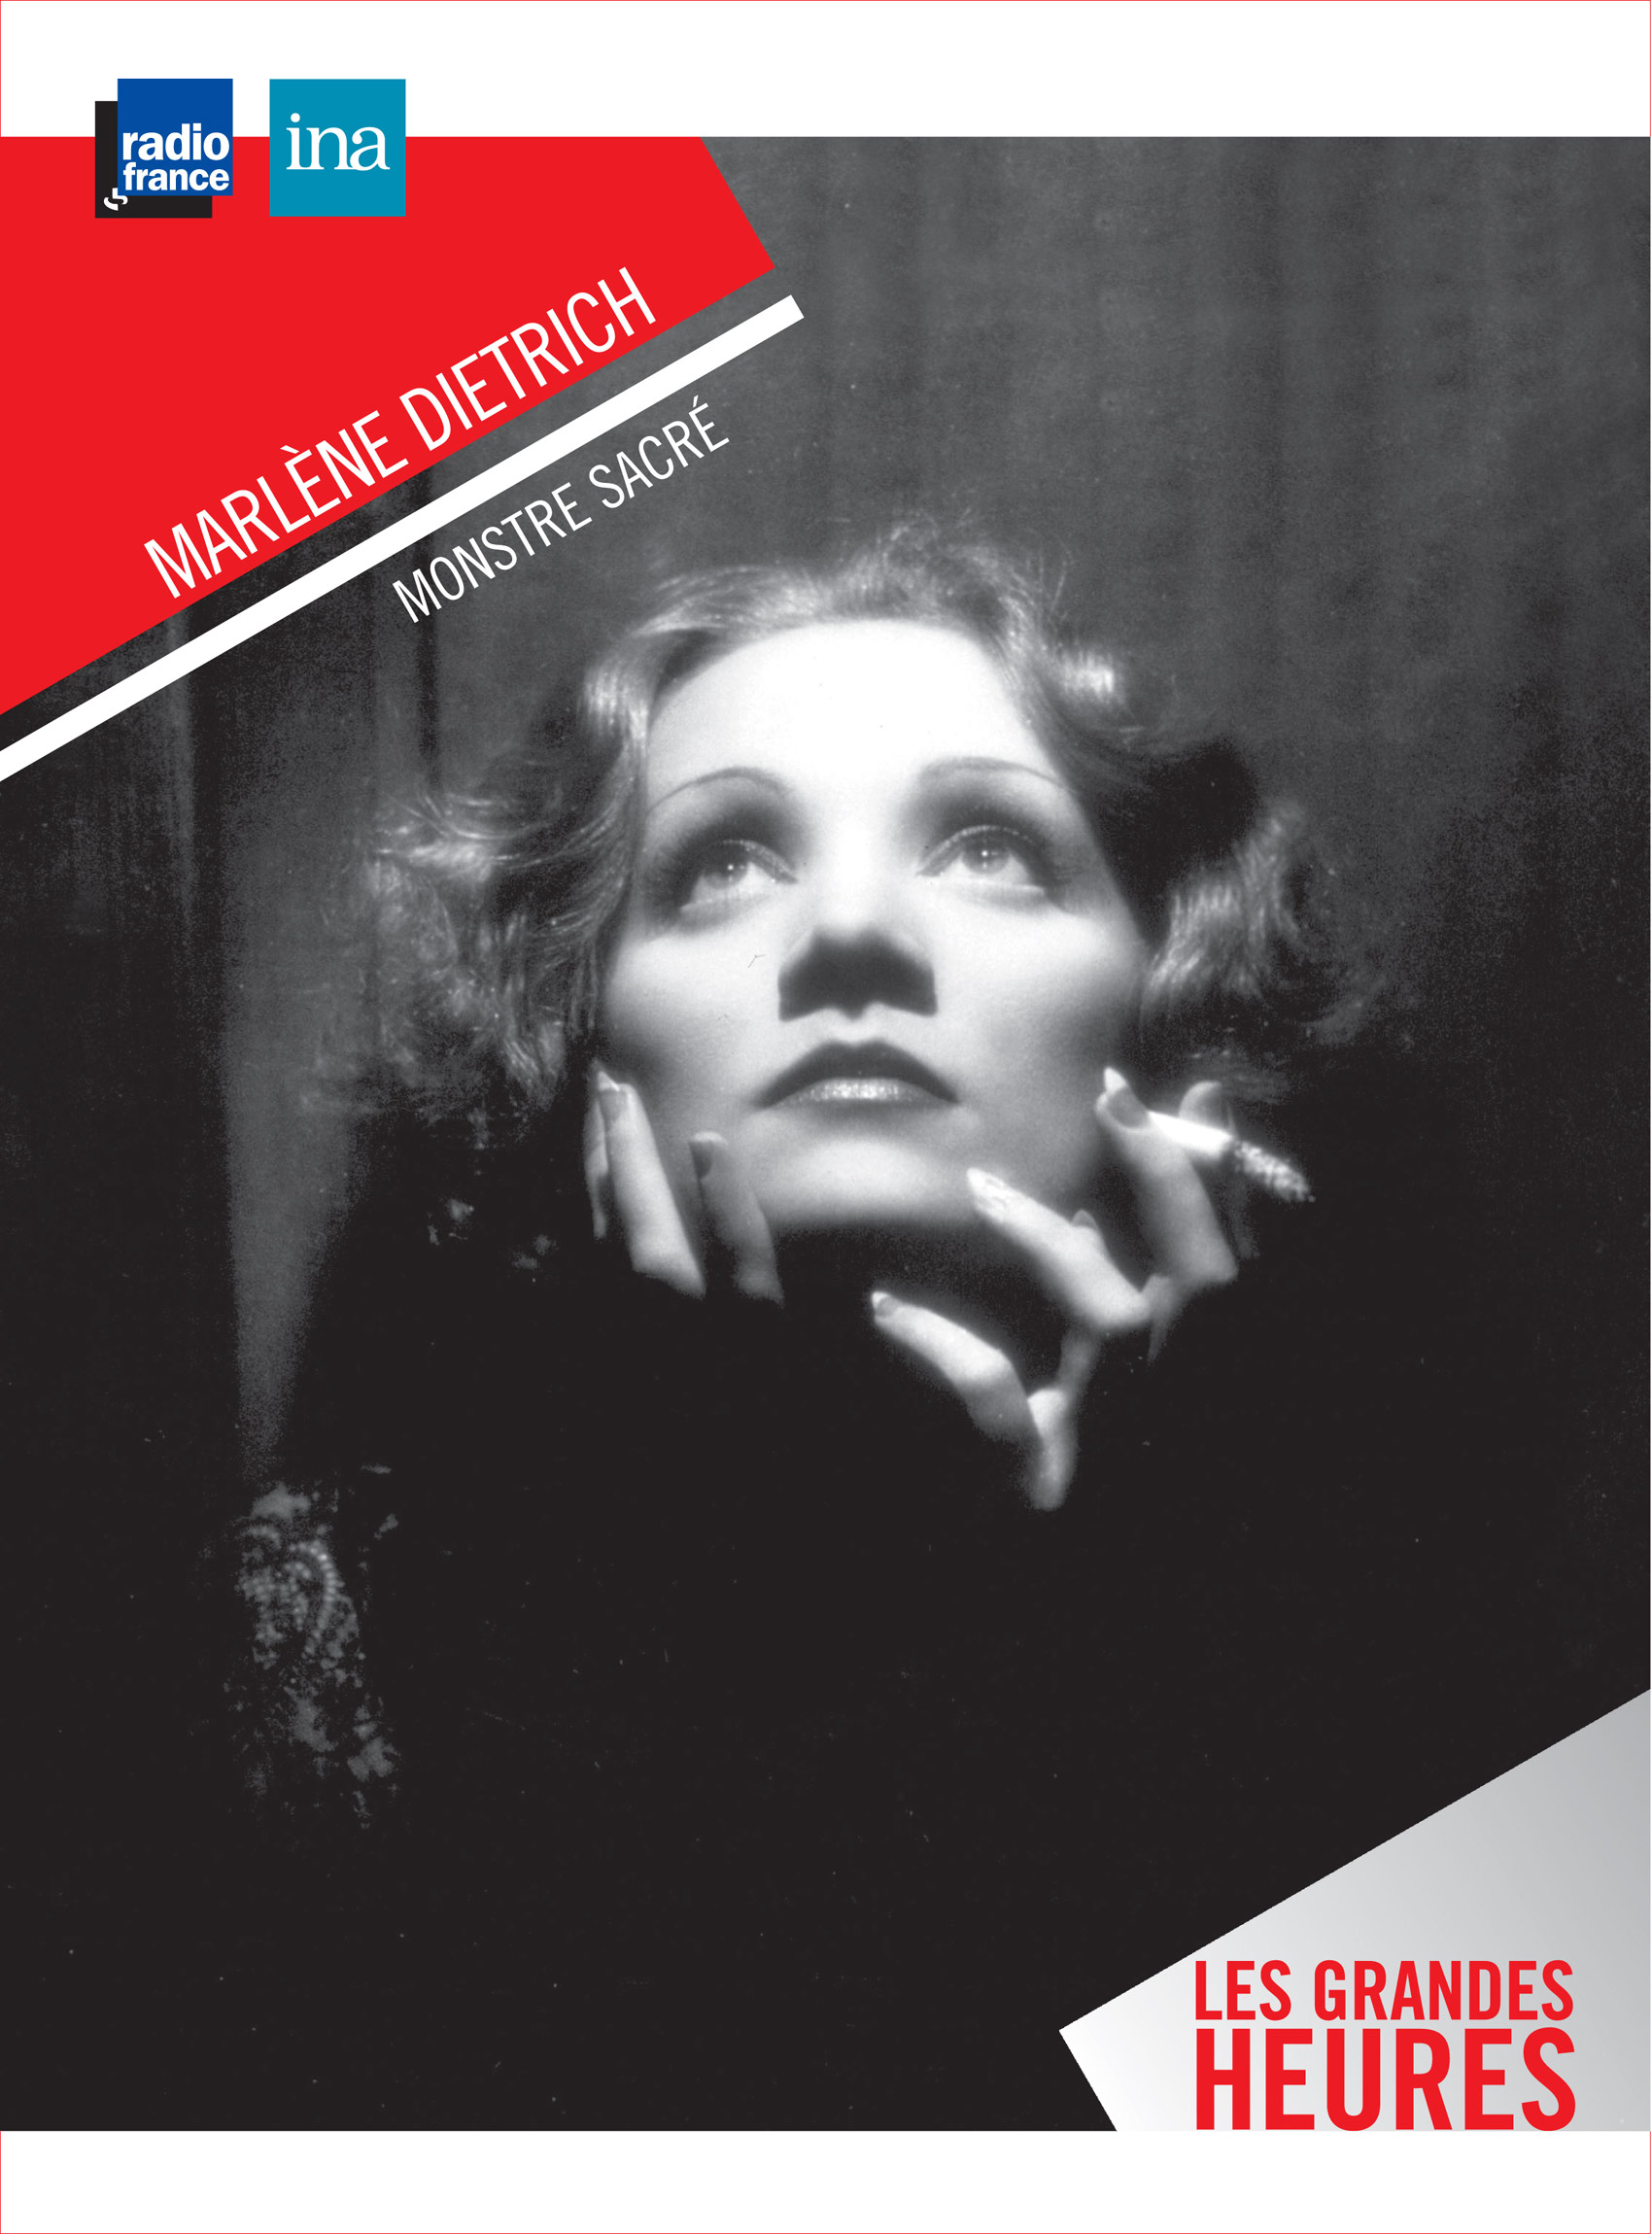 Marlene Dietrich Monstre Sacre Cd France Culture Ina